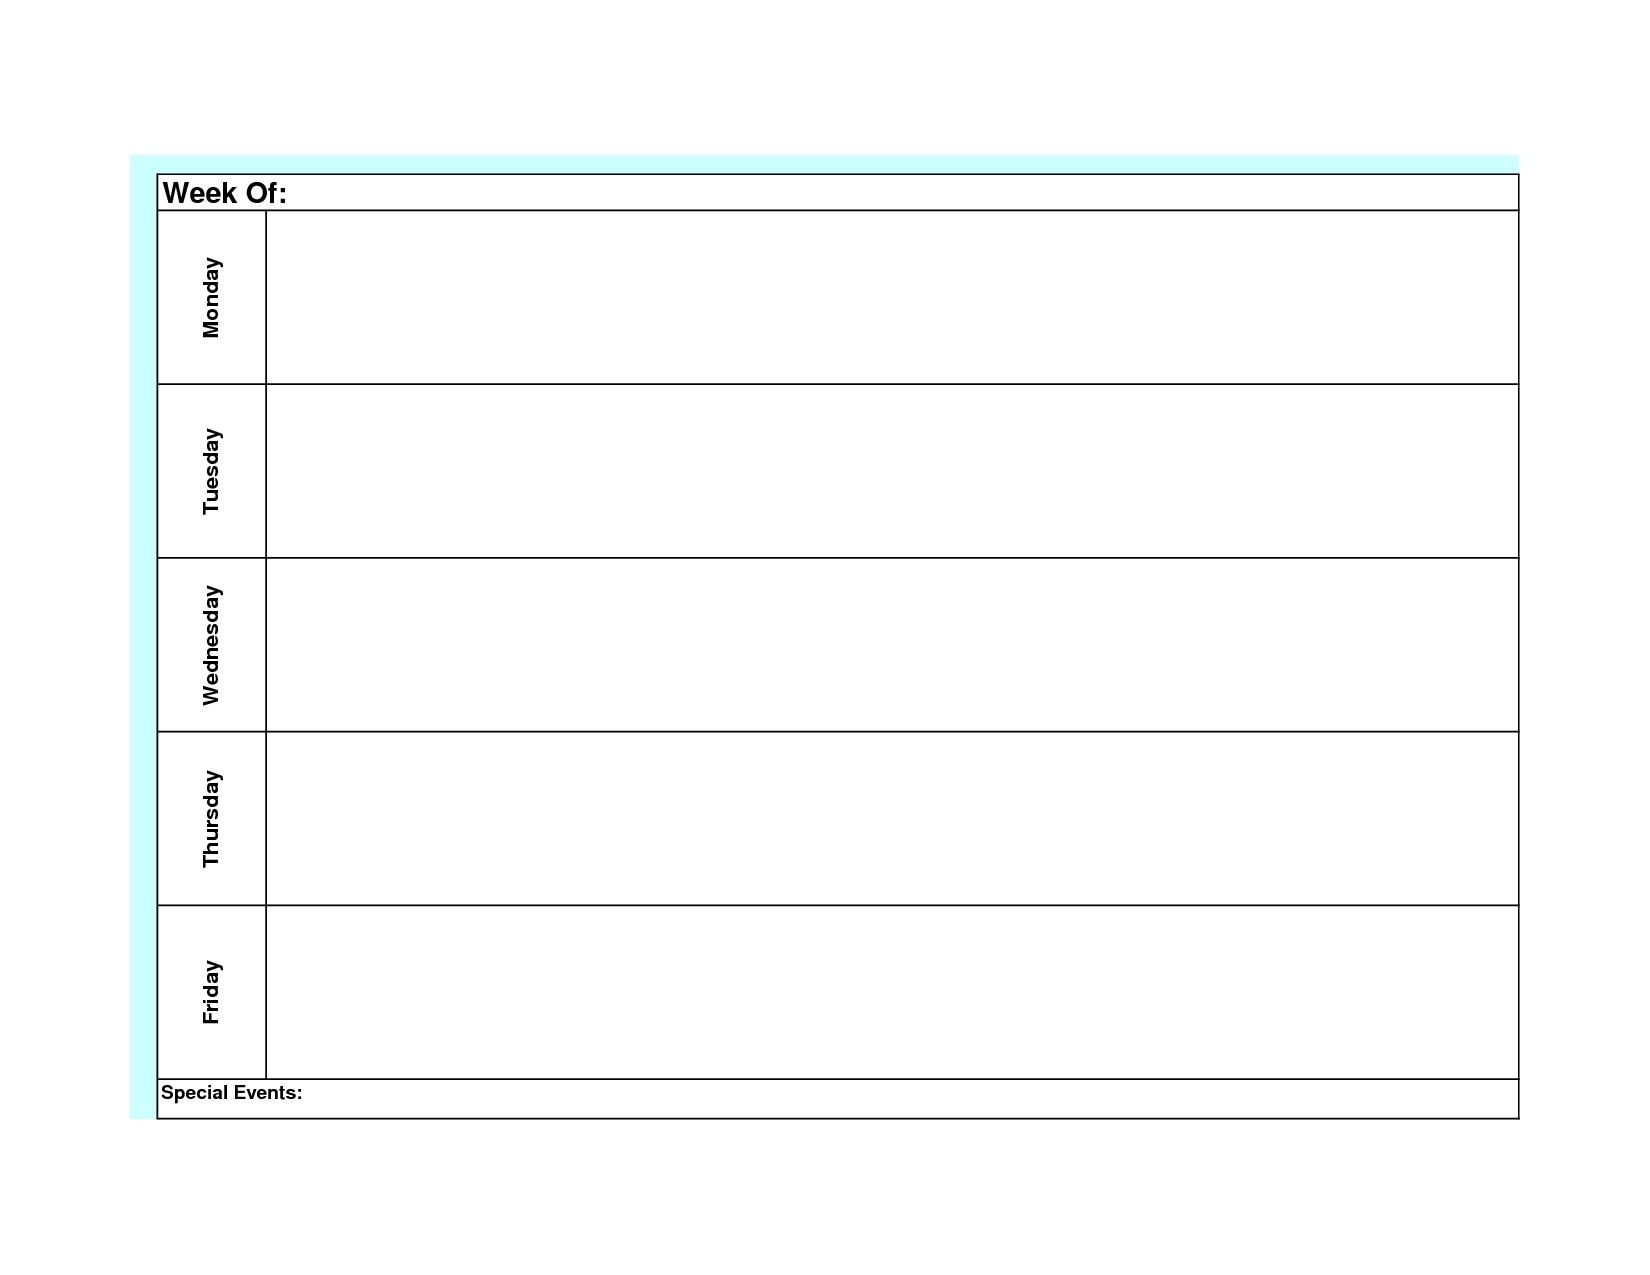 Blank Weekly Calendar Monday Through Friday Template Planner To | Smorad within Monday - Friday Planner Template